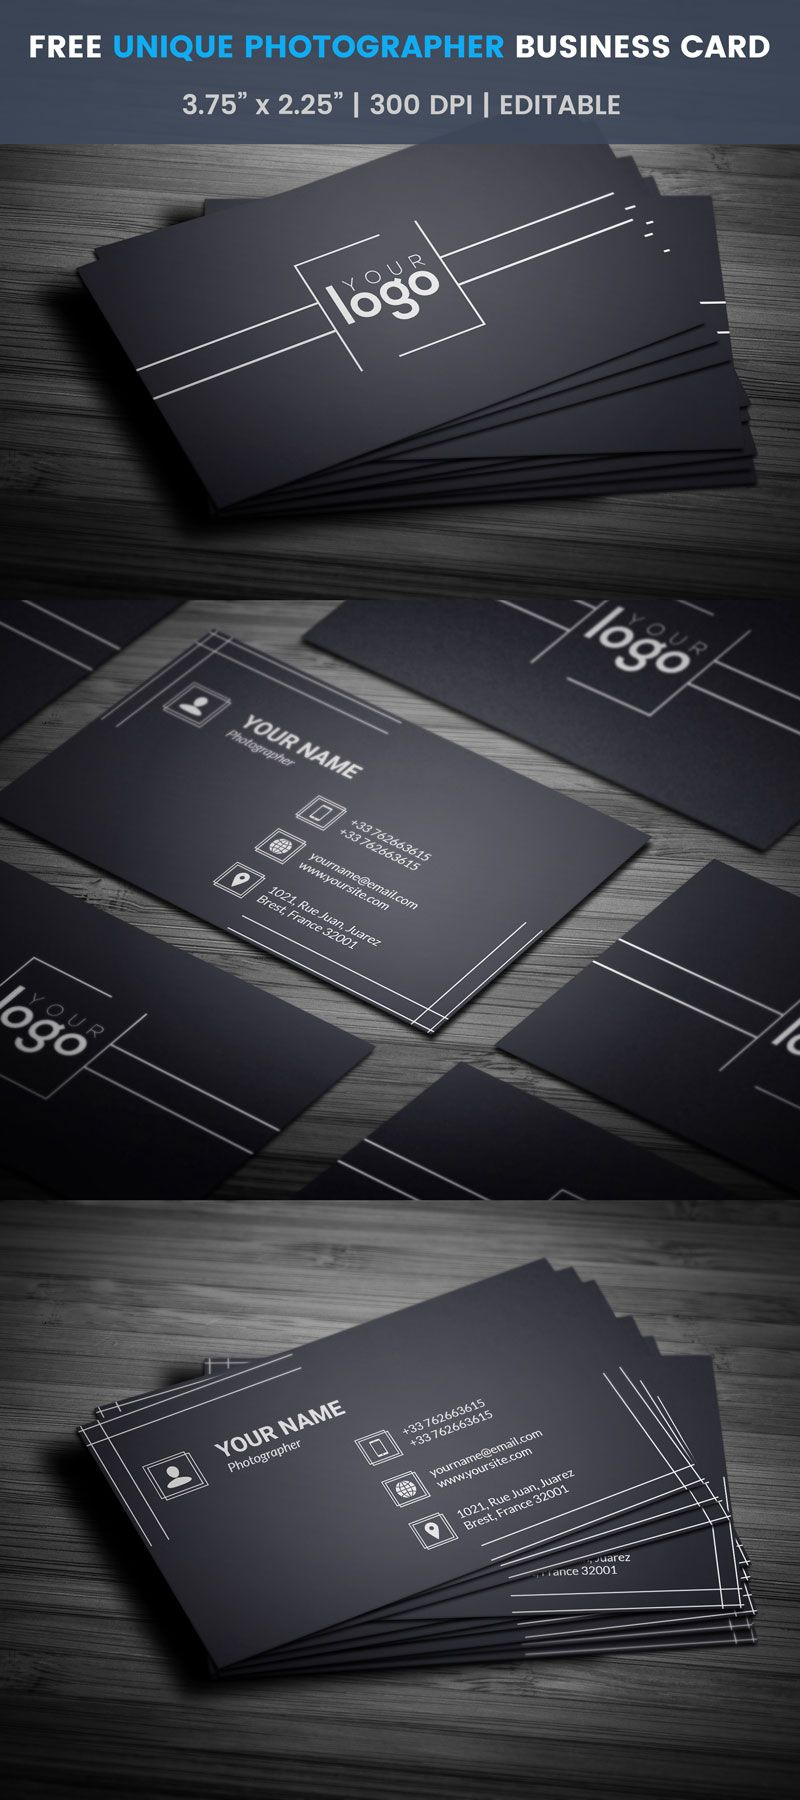 Unique photographer business card full preview ar cards free unique photographer business card template edit download reheart Choice Image